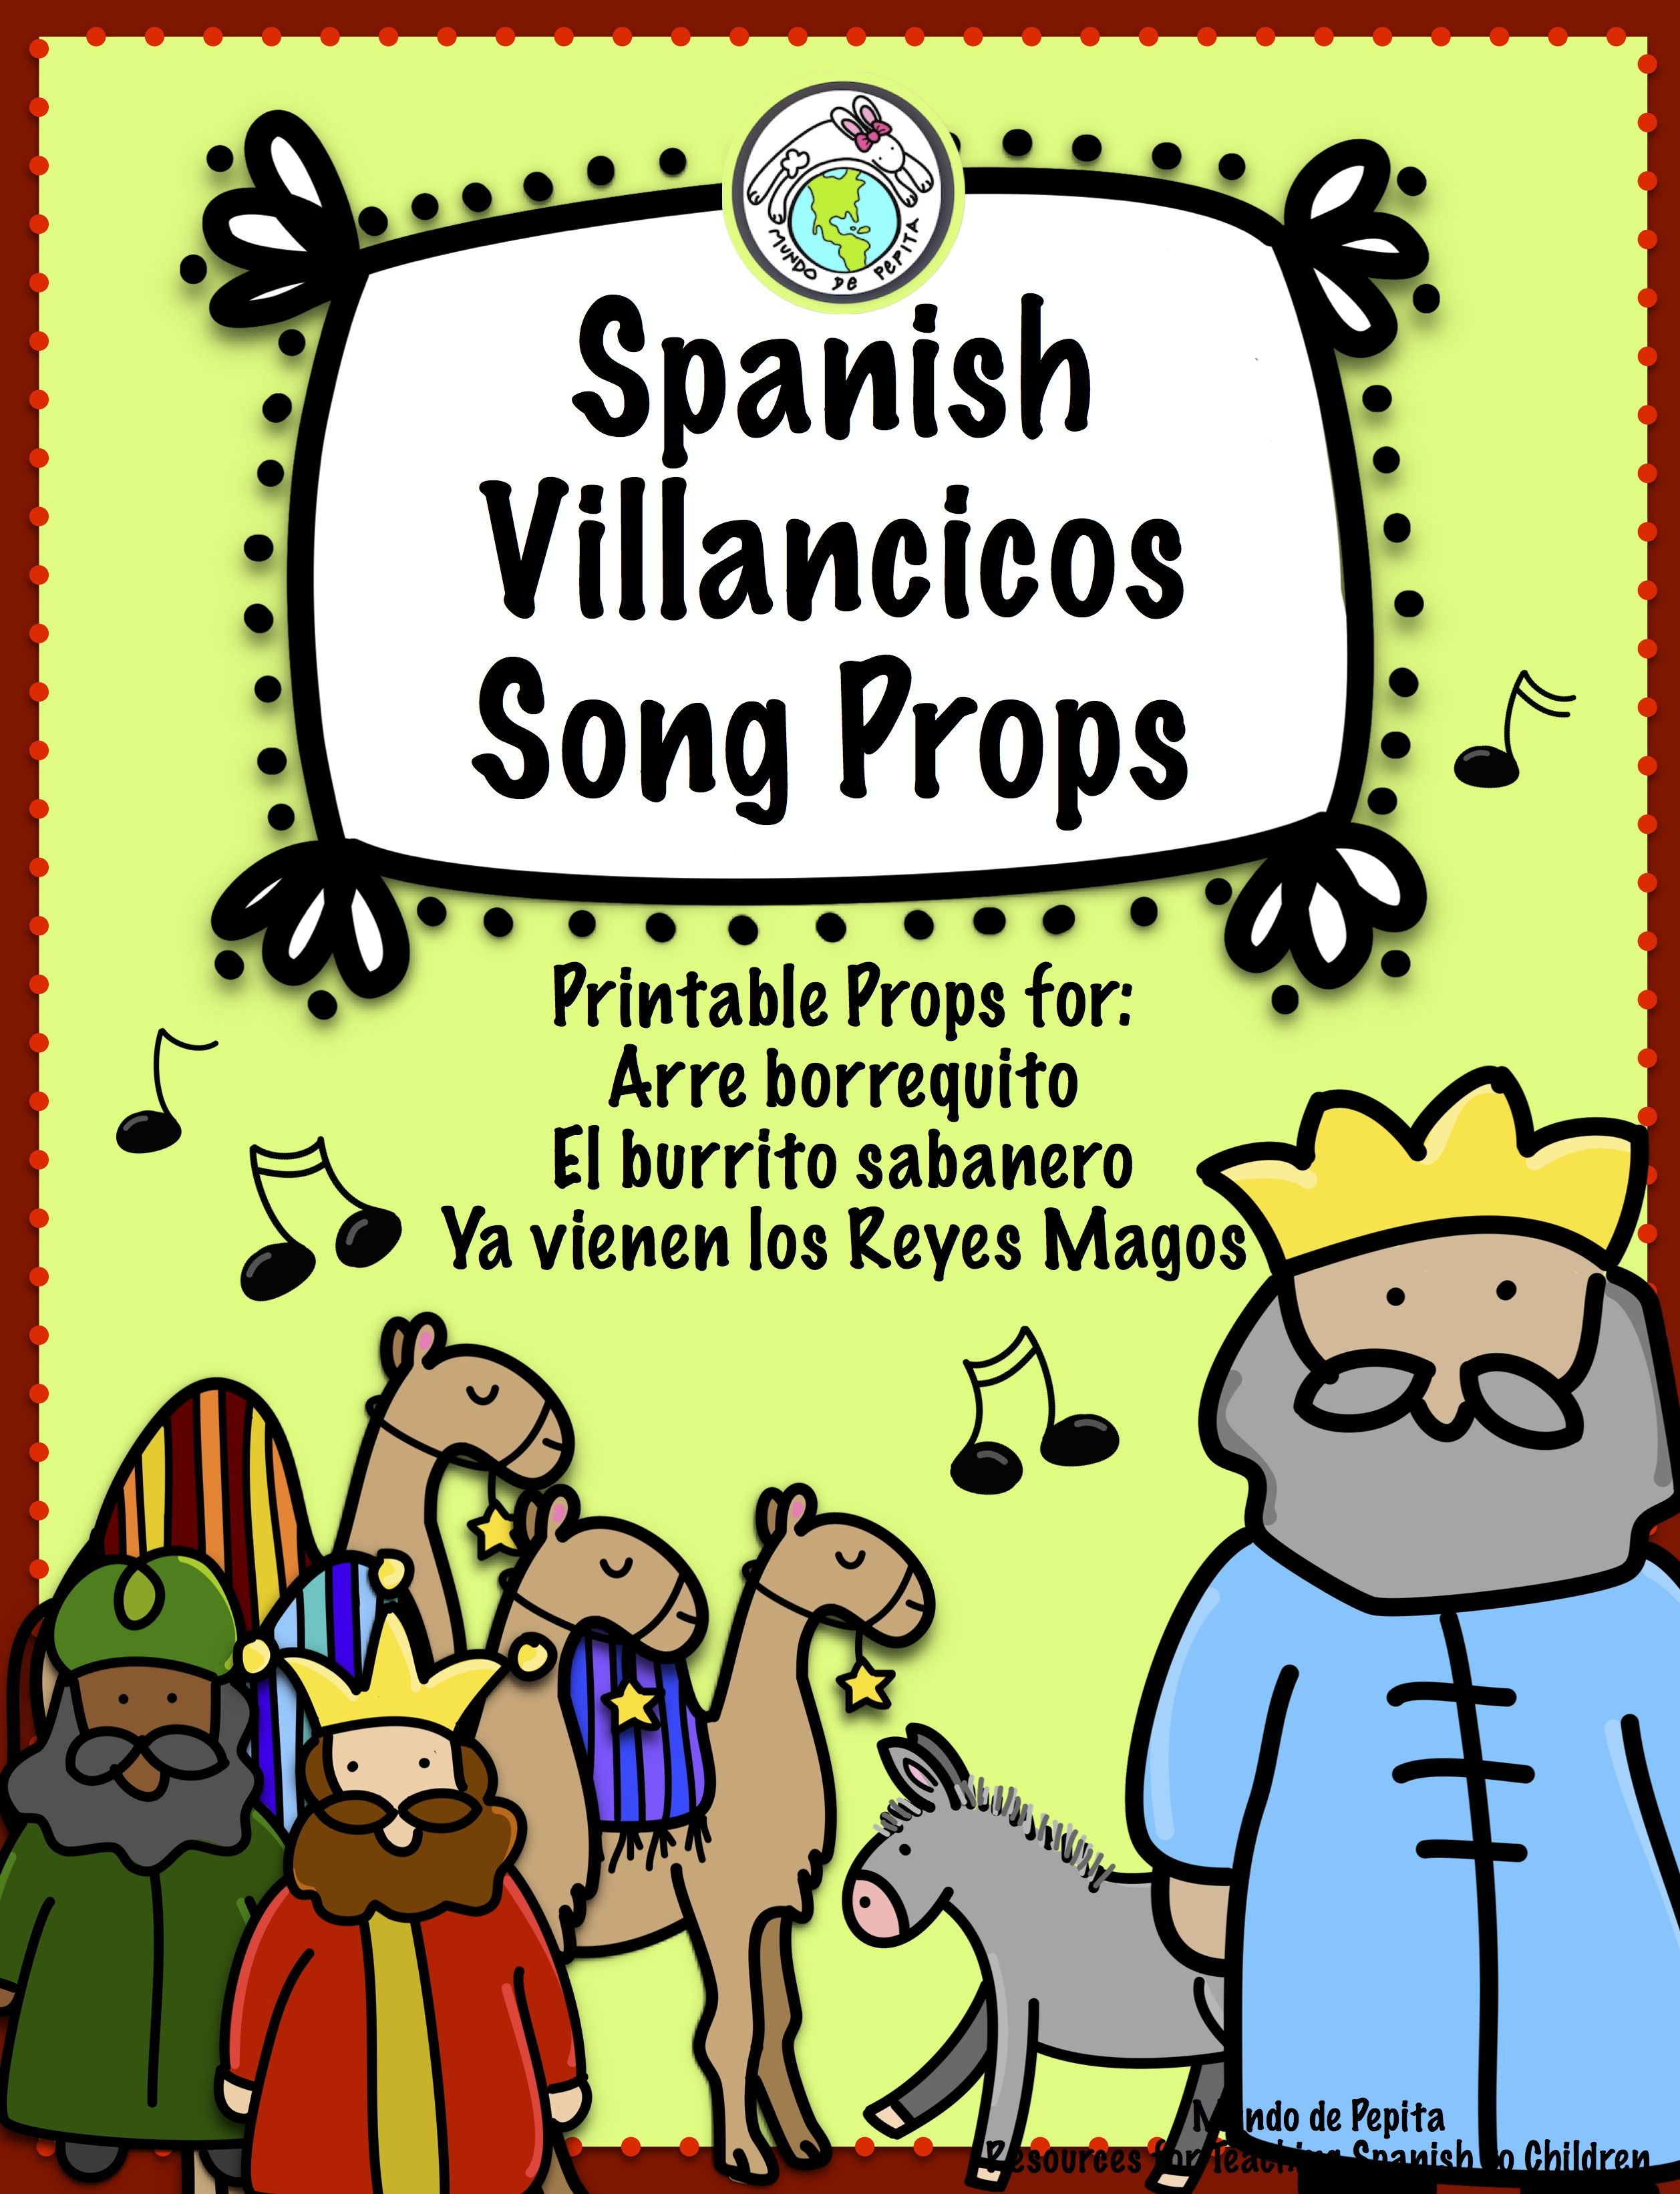 Spanish Christmas Villancicos Printable Song Props With